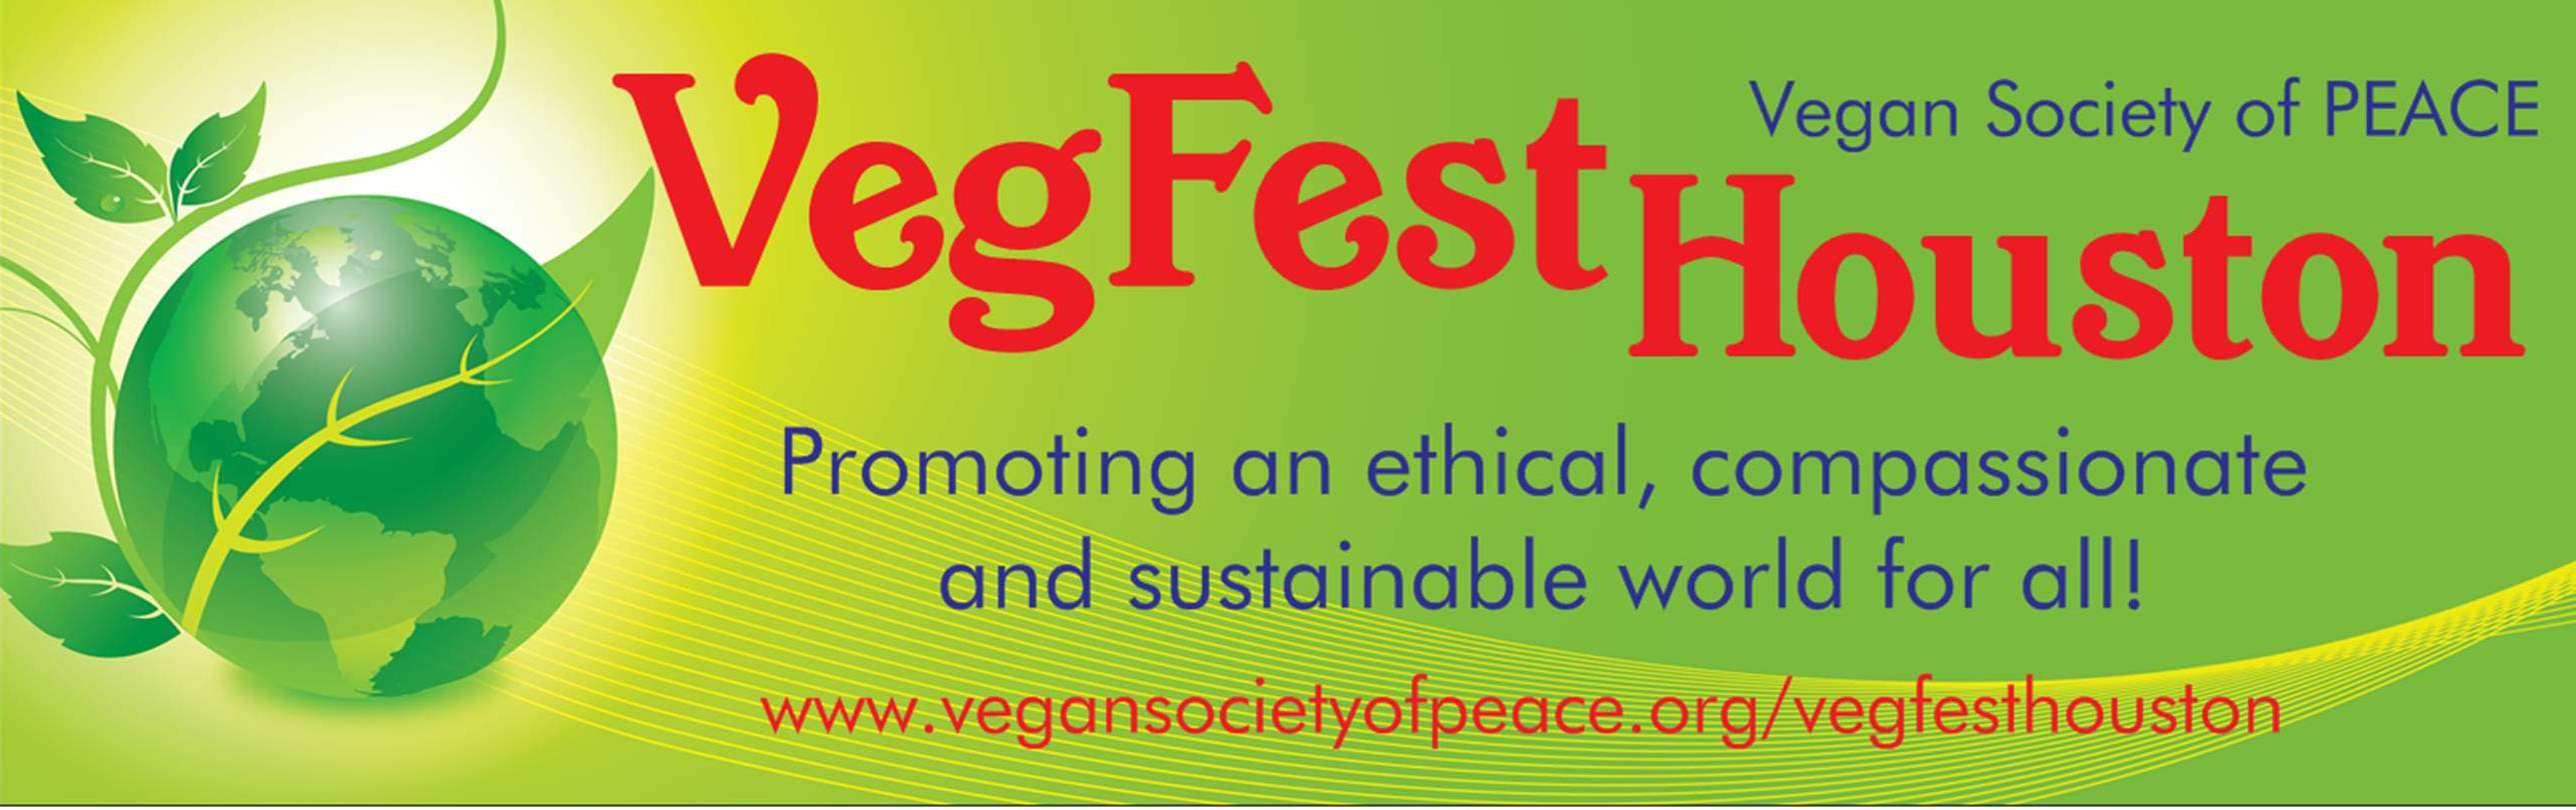 Vegan Society of PEACE VSOP VegFest Houston